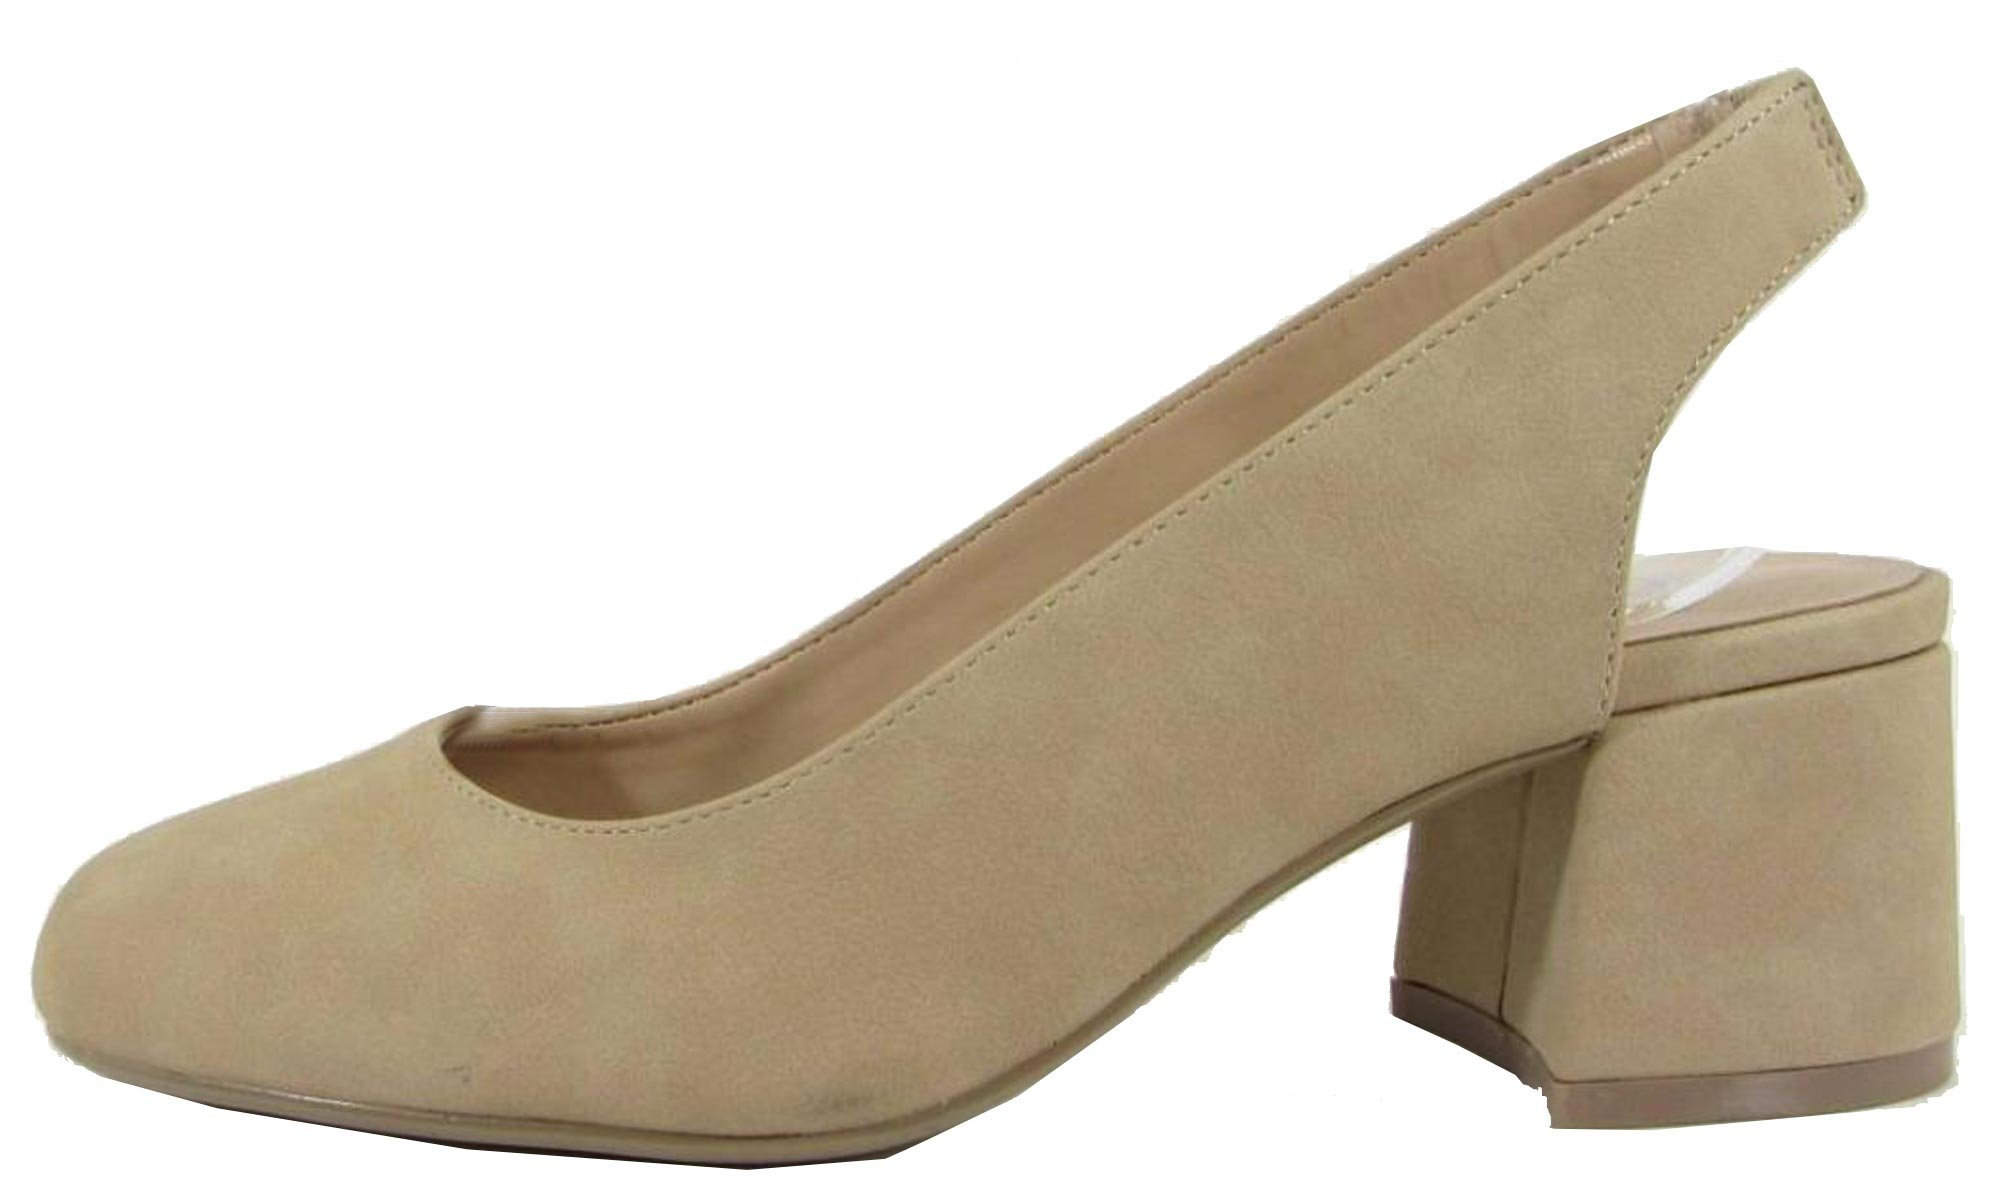 City Classified Women's Slingback Round Toe Block Heel Sandal Pump (10 B(M) US, Natural NBPU) by City Classified (Image #1)